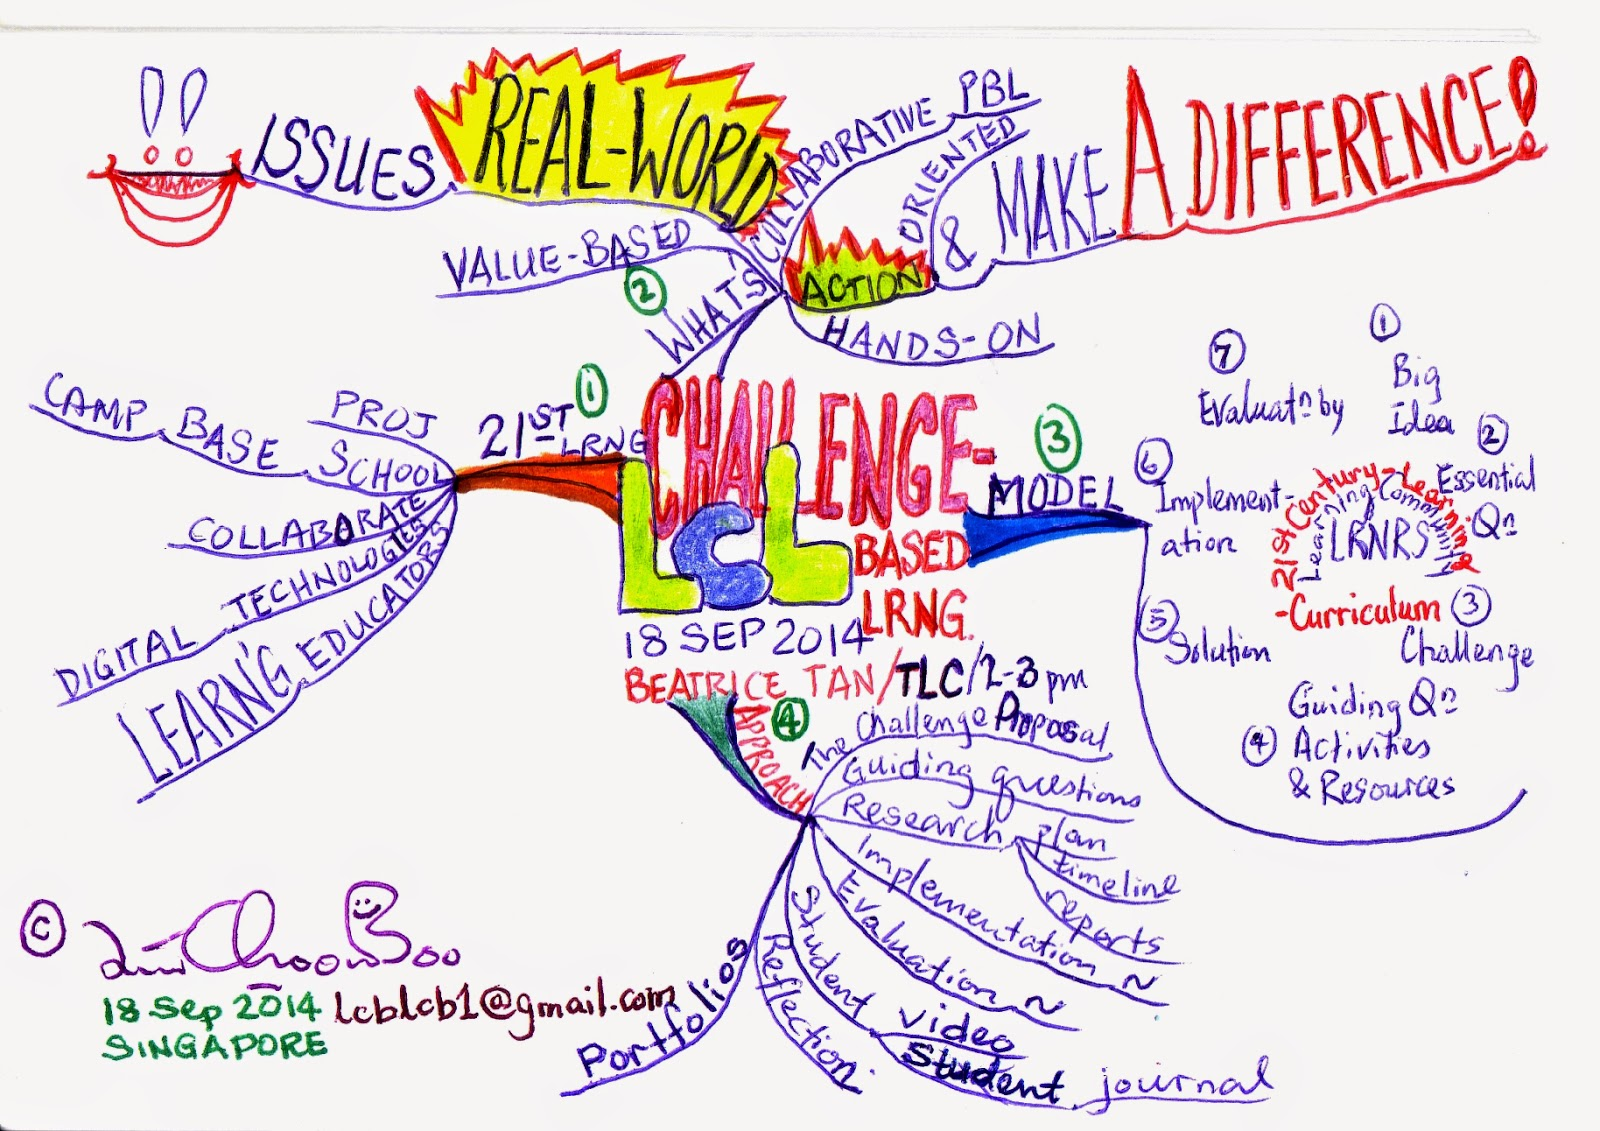 Learn to be a Mindmapper Lim Choon Boo MIND MAP on CHALLENGE